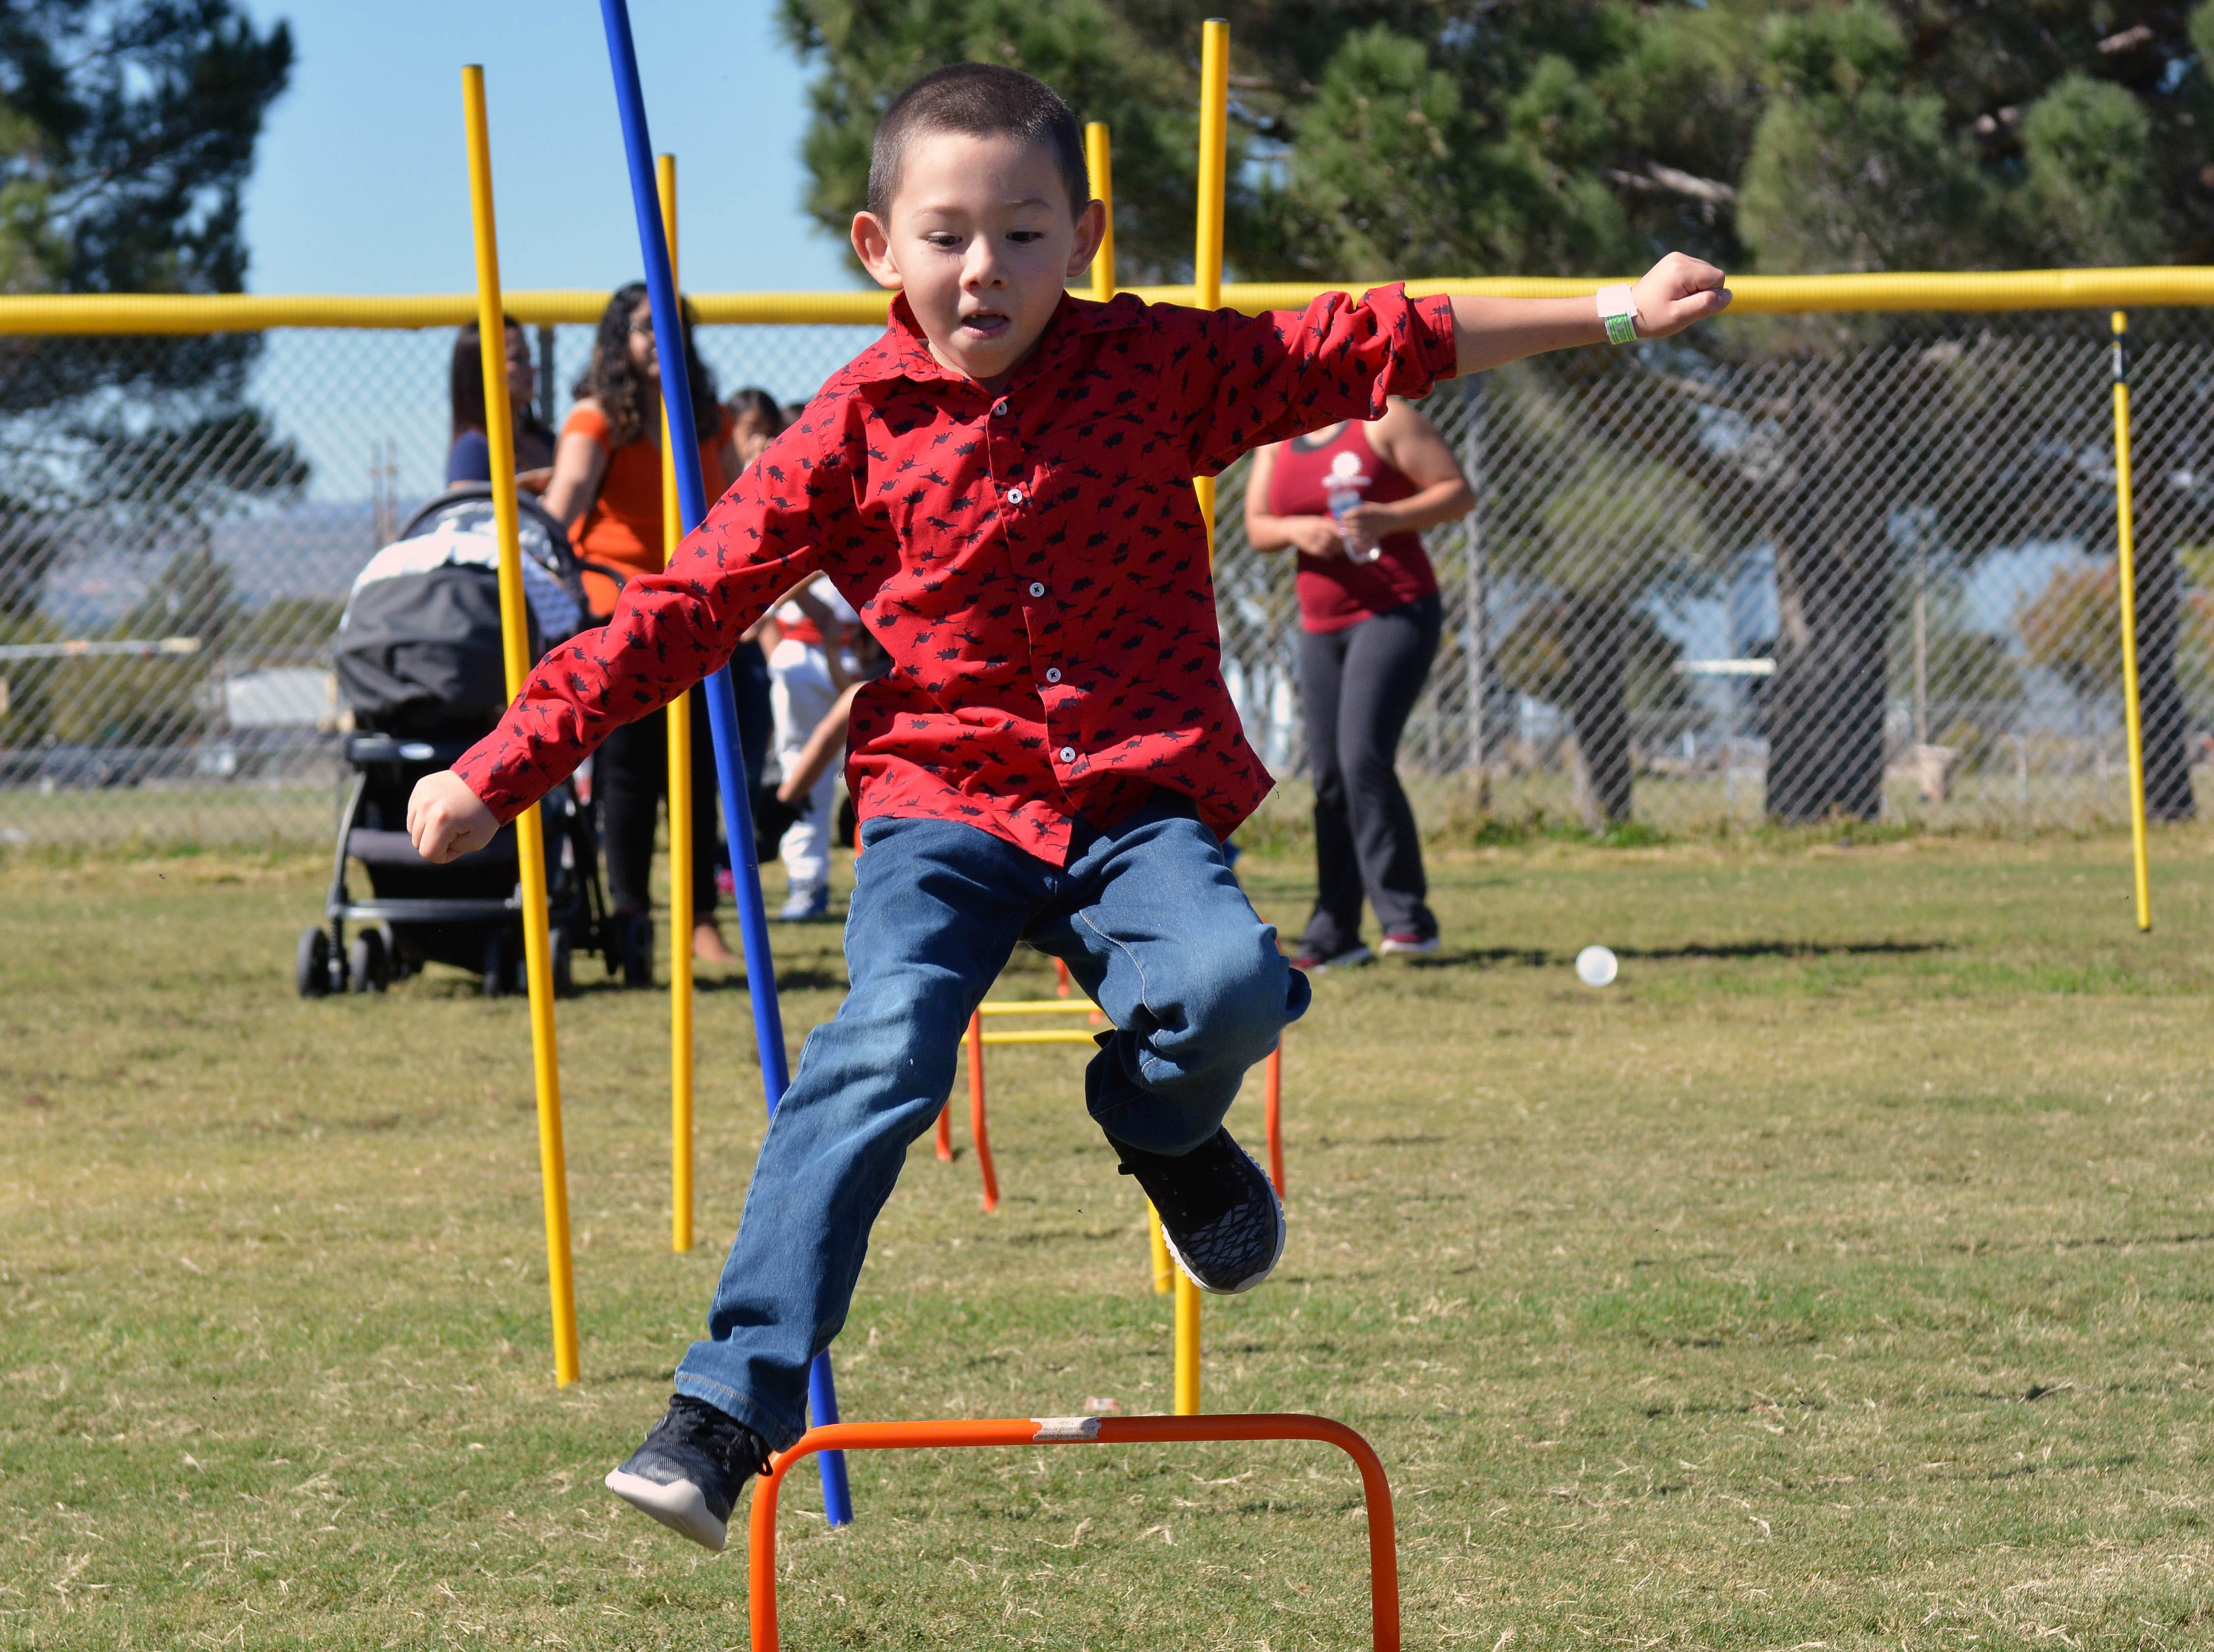 Jaden Palafox, 6, runs the obstacle course at this year's 14th annual Great Pumpkin Candy Drop, held Sunday, Oct, 28 at Maag Park.